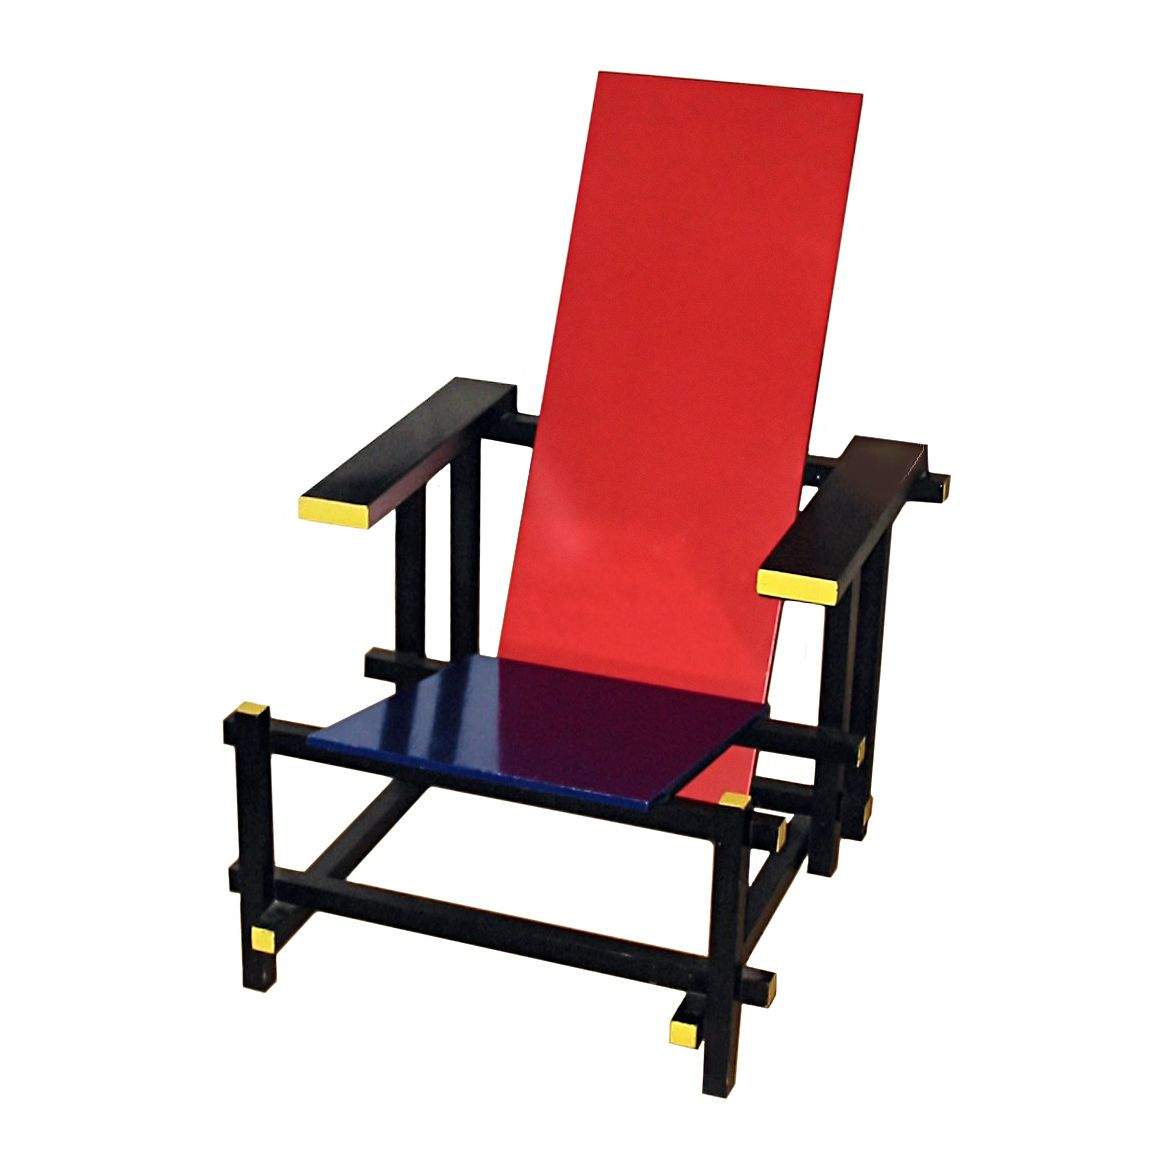 Sedia Red And Blue.Sedia Poltroncina Red Blue Doombodesign Furniture